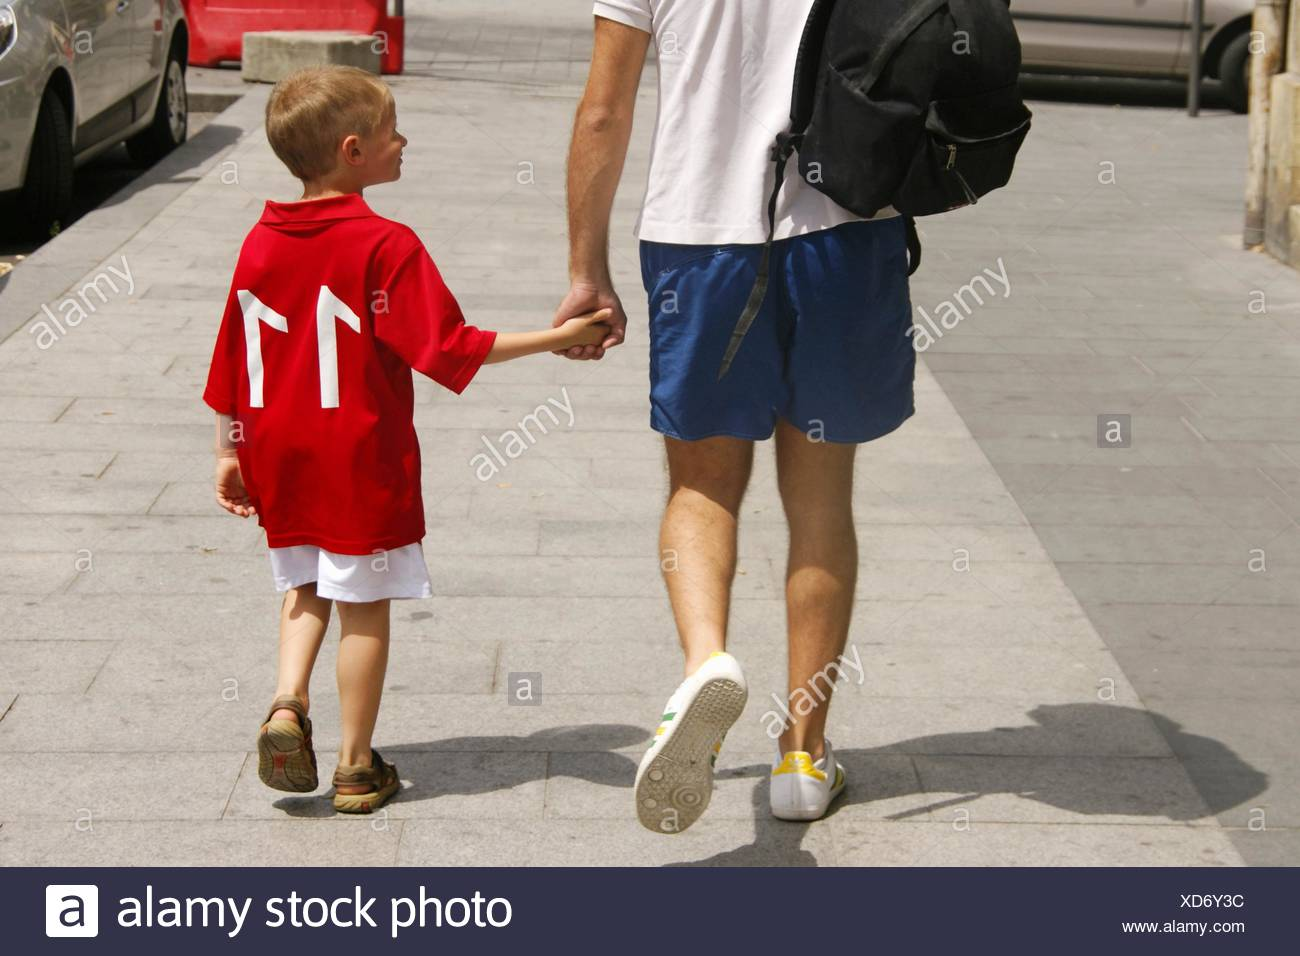 Kid with big brother - Stock Image